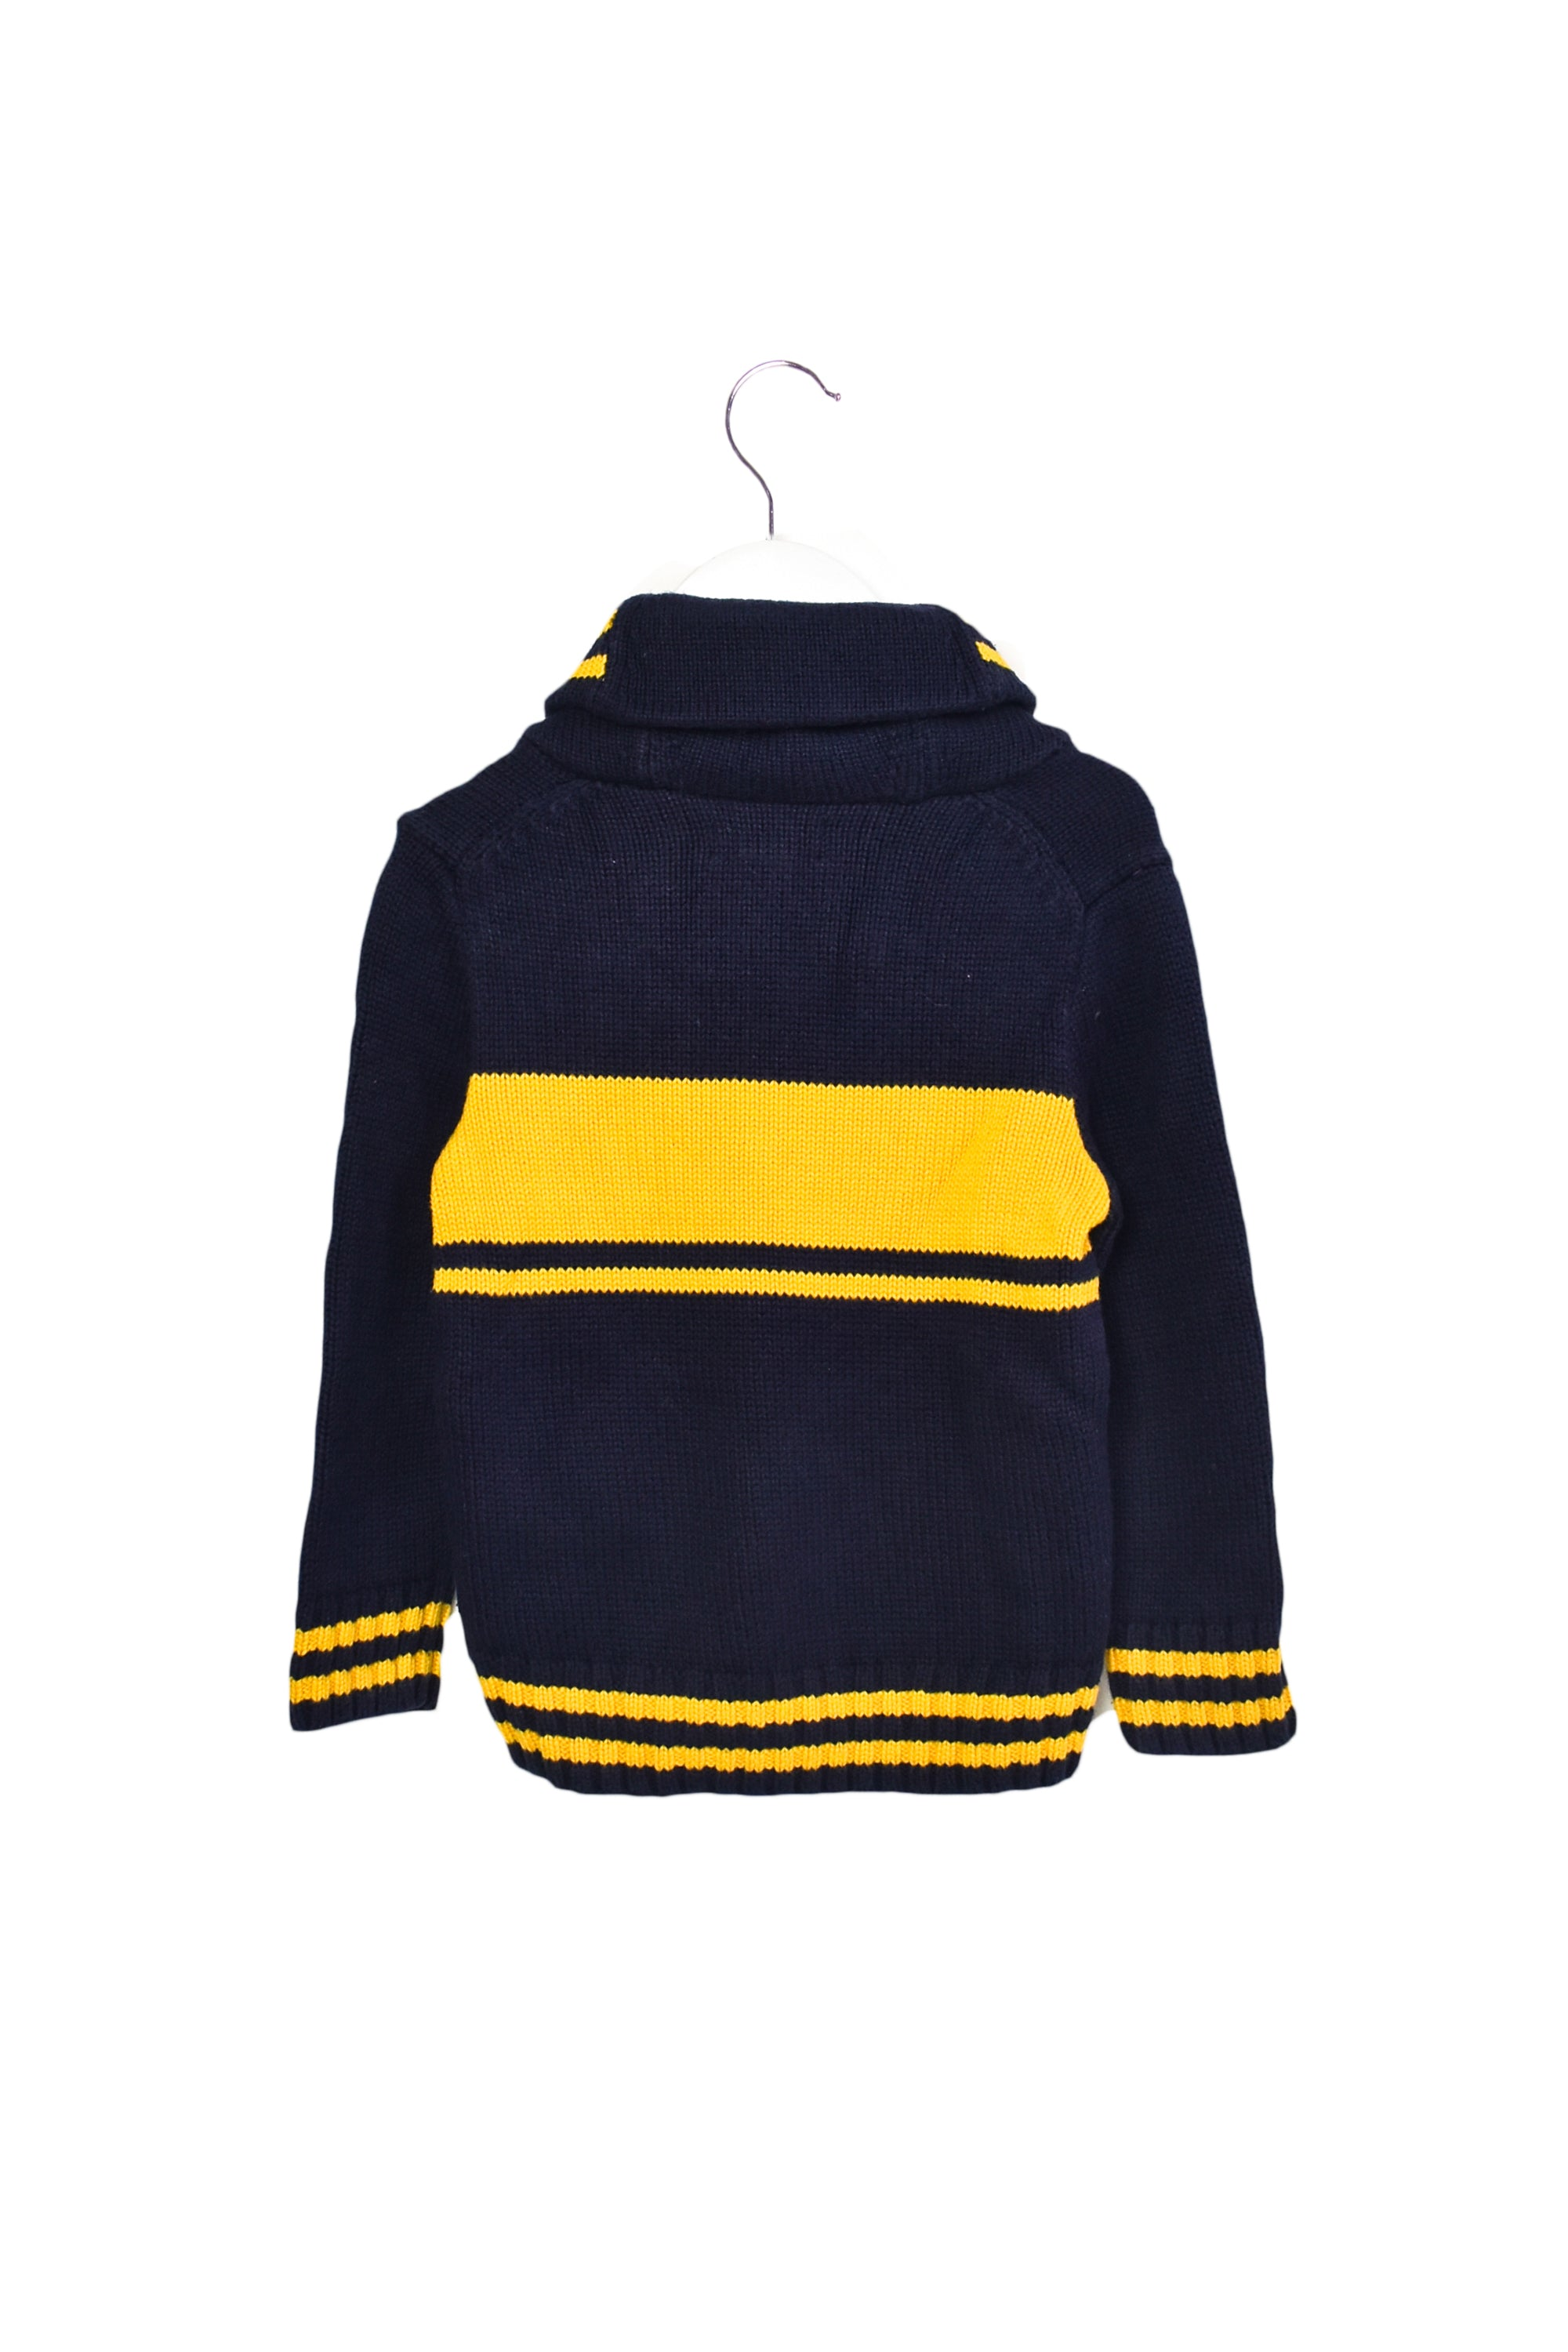 10014268 Ralph Lauren Kids ~Sweater 3T at Retykle